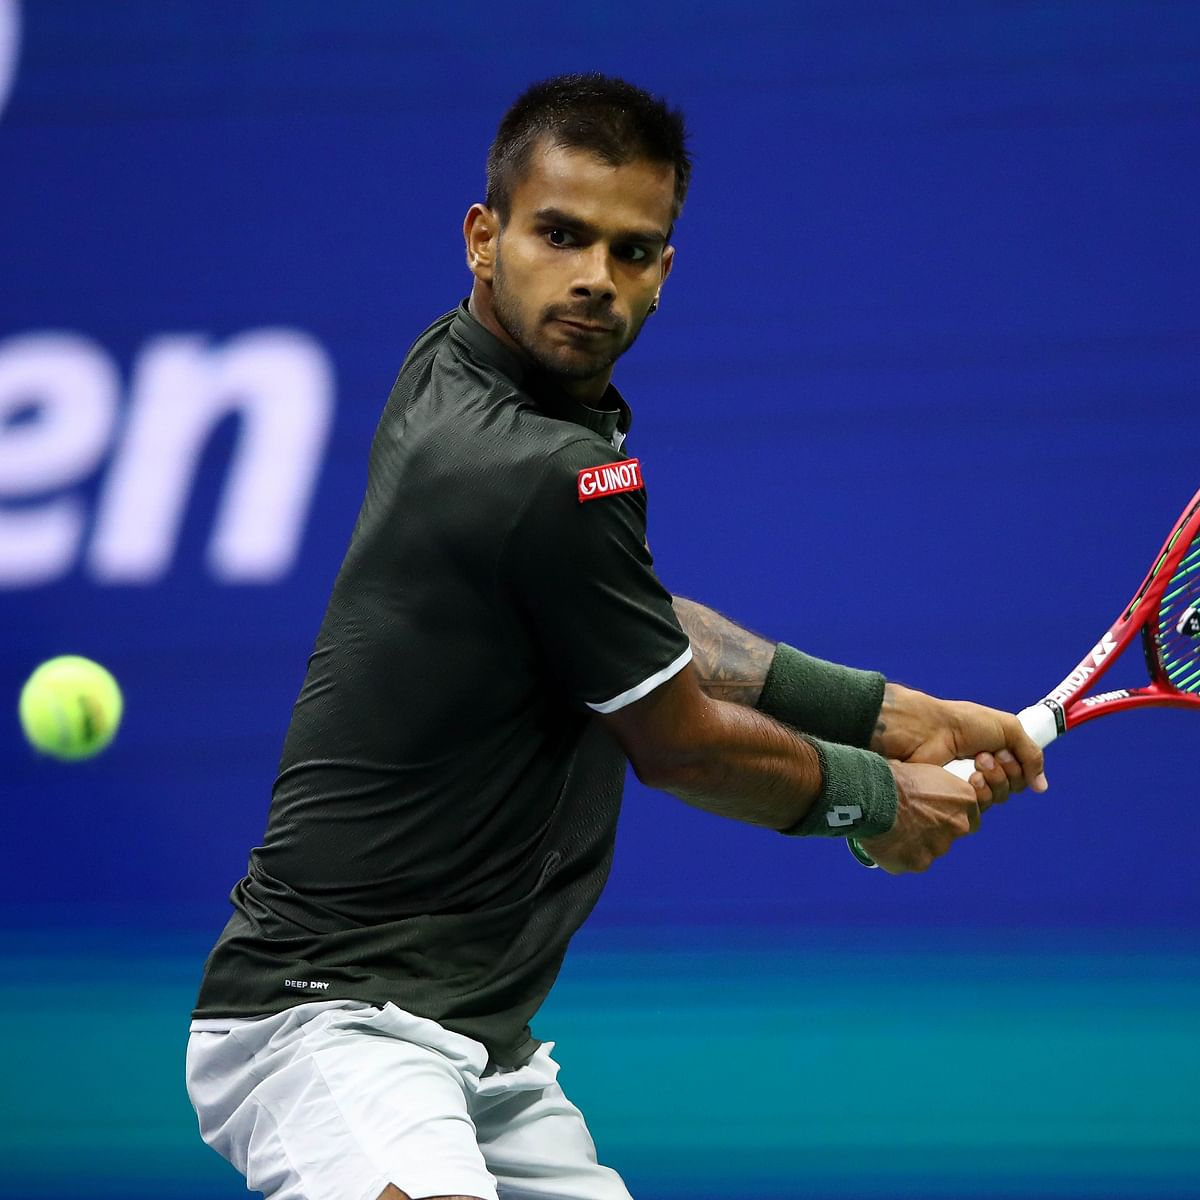 US Open 2019: Sumit Nagal takes a set from Roger Federer before exiting